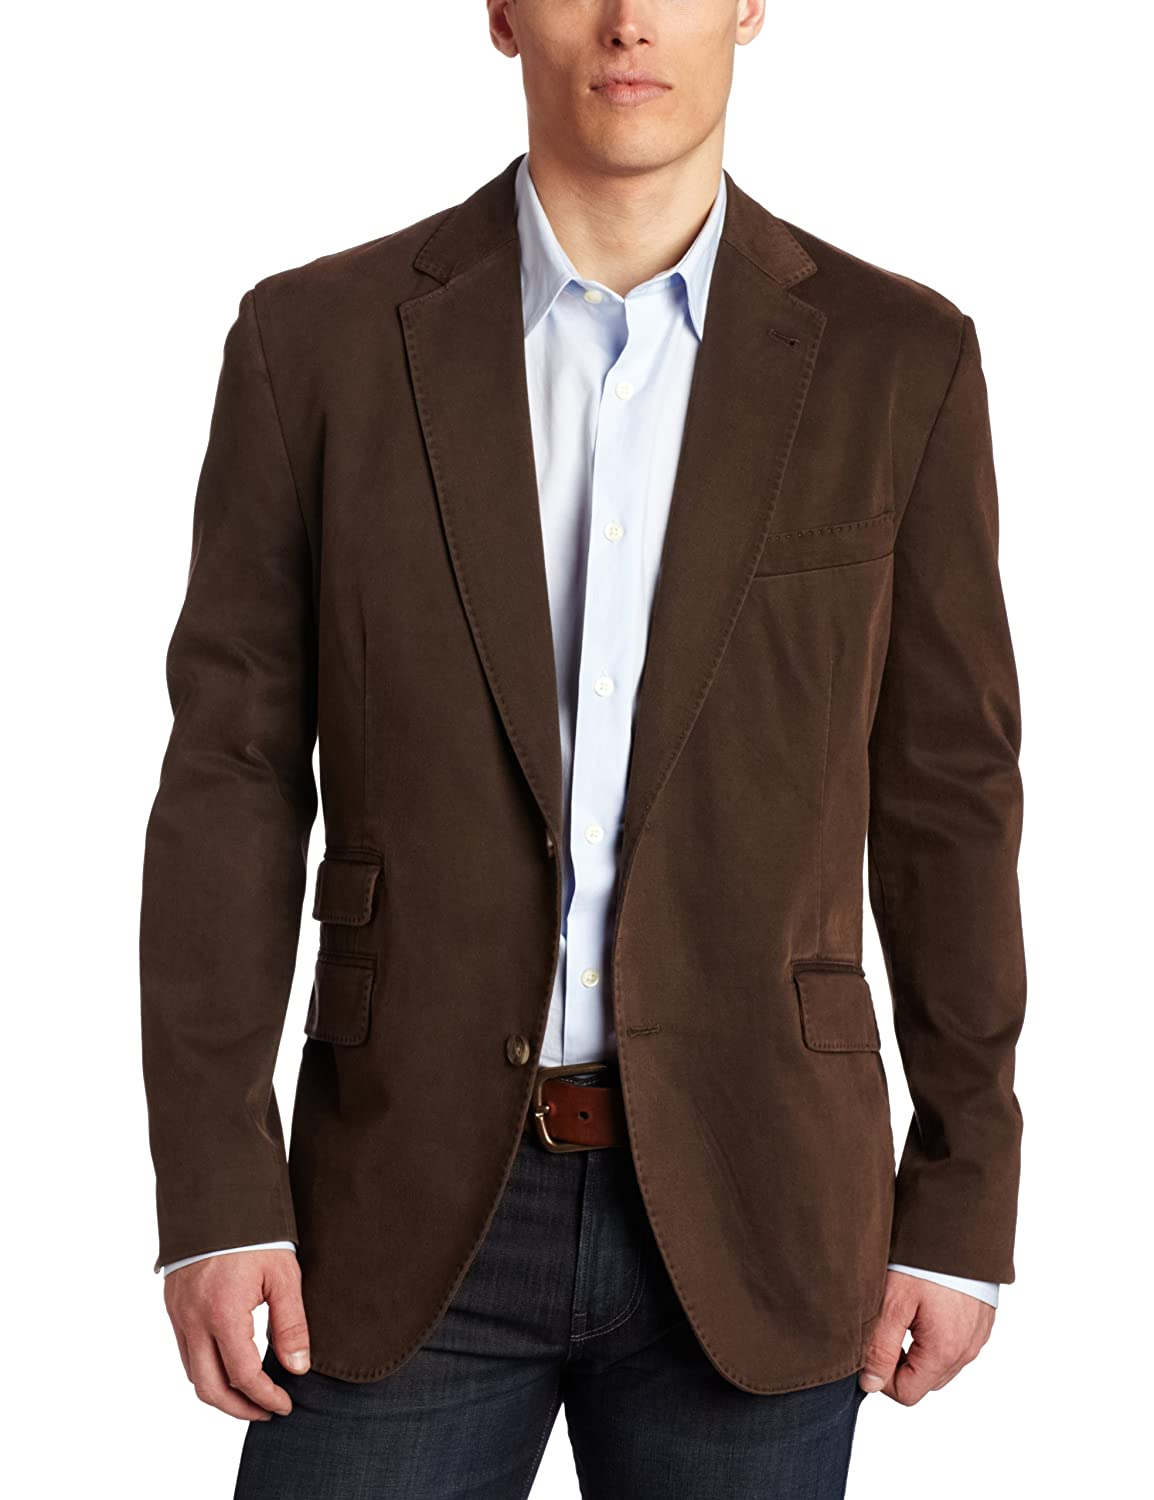 Find a full collection of Women's Plus Size MEN'S BIG & TALL,Plus Size Sport Coats in modern and classic styles, also find plus size dresses, jeans, career, pants, shirts, sweaters, coats and more.